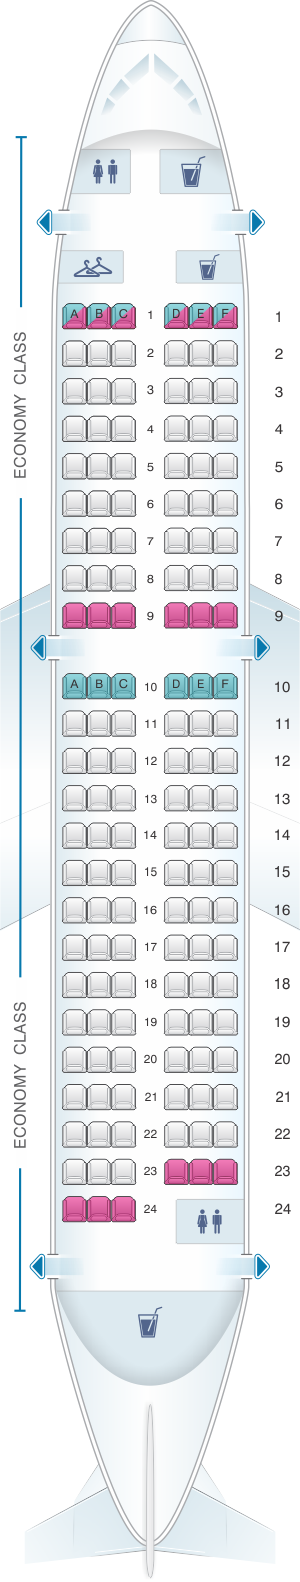 Seat map for Brussels Airlines Airbus A319